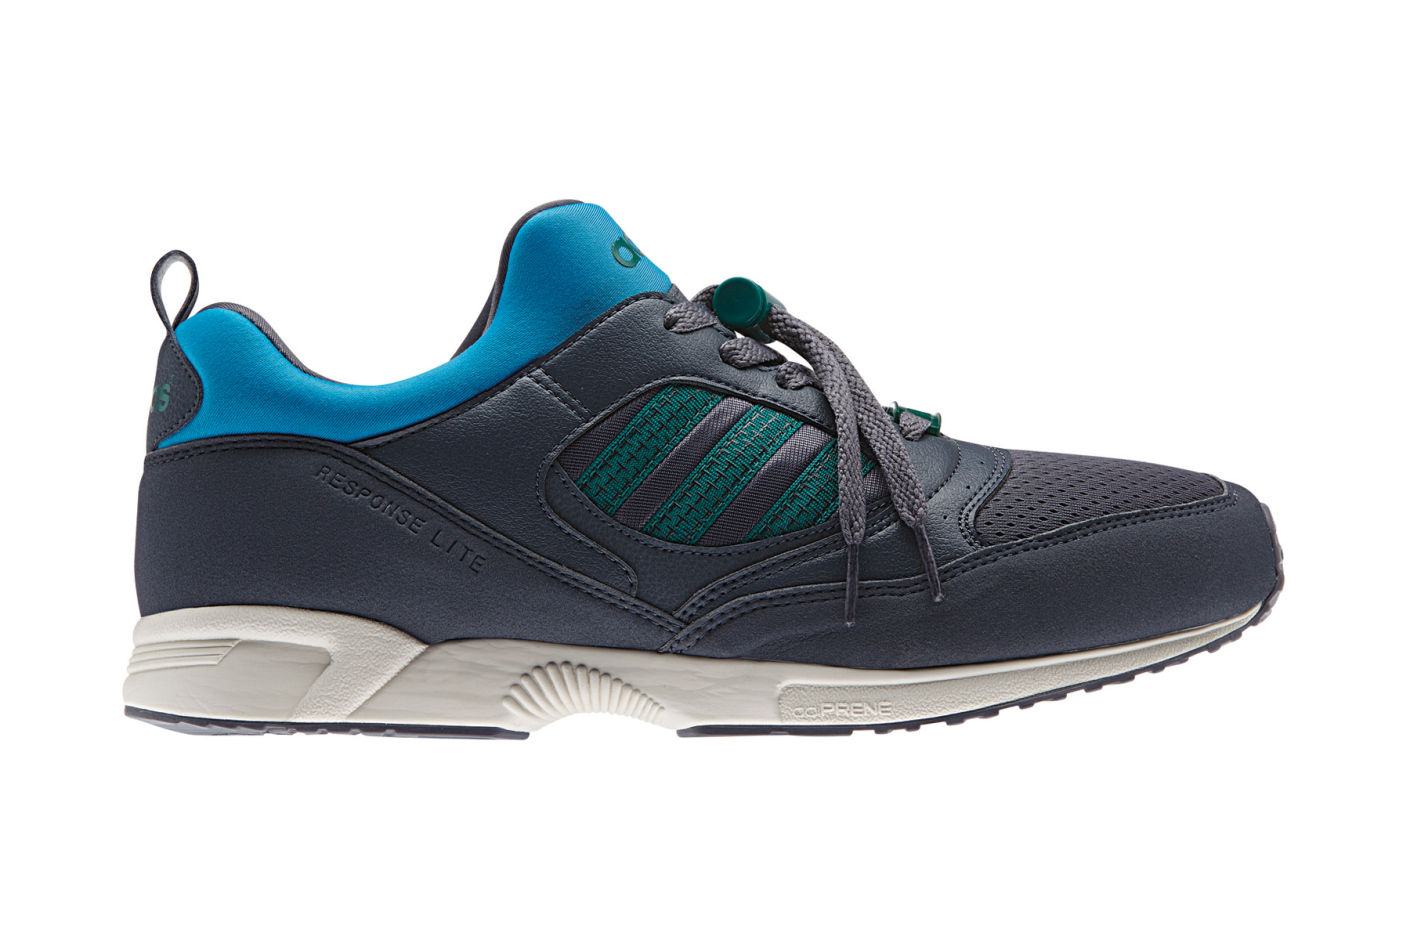 adidas-originals-2014-fall-winter-torsion-response-lite-2